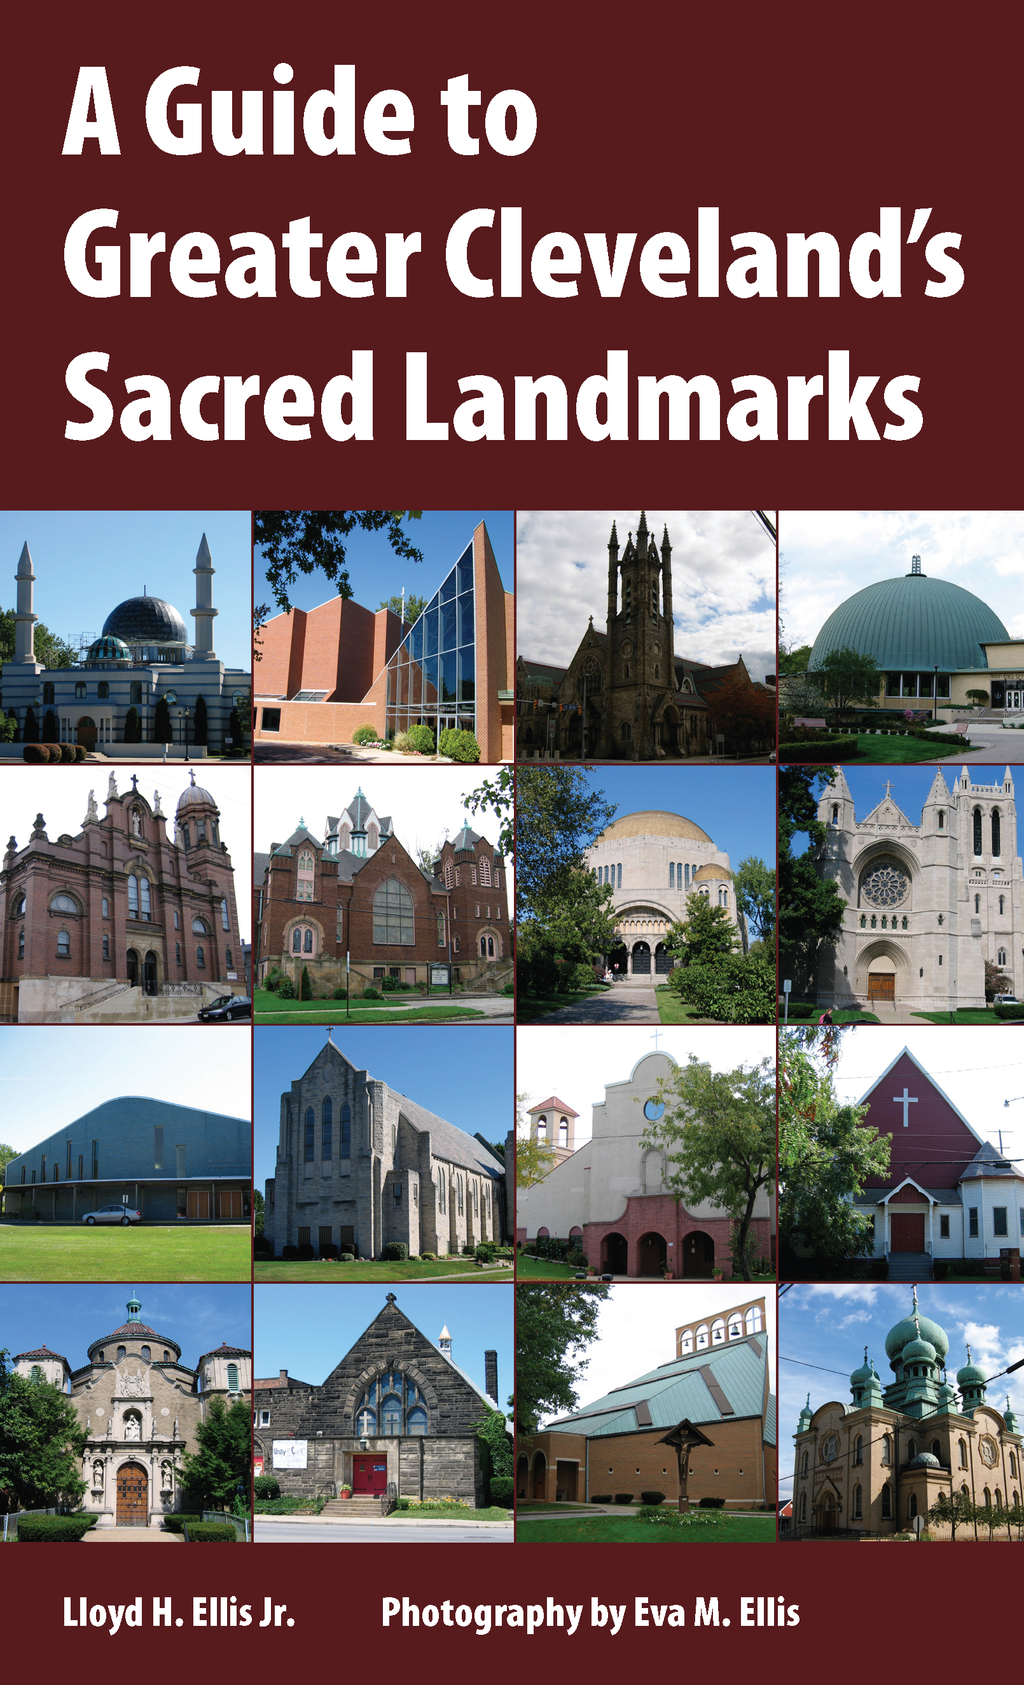 A Guide to Greater Cleveland's Sacred Landmarks By: Lloyd H. Ellis Jr.